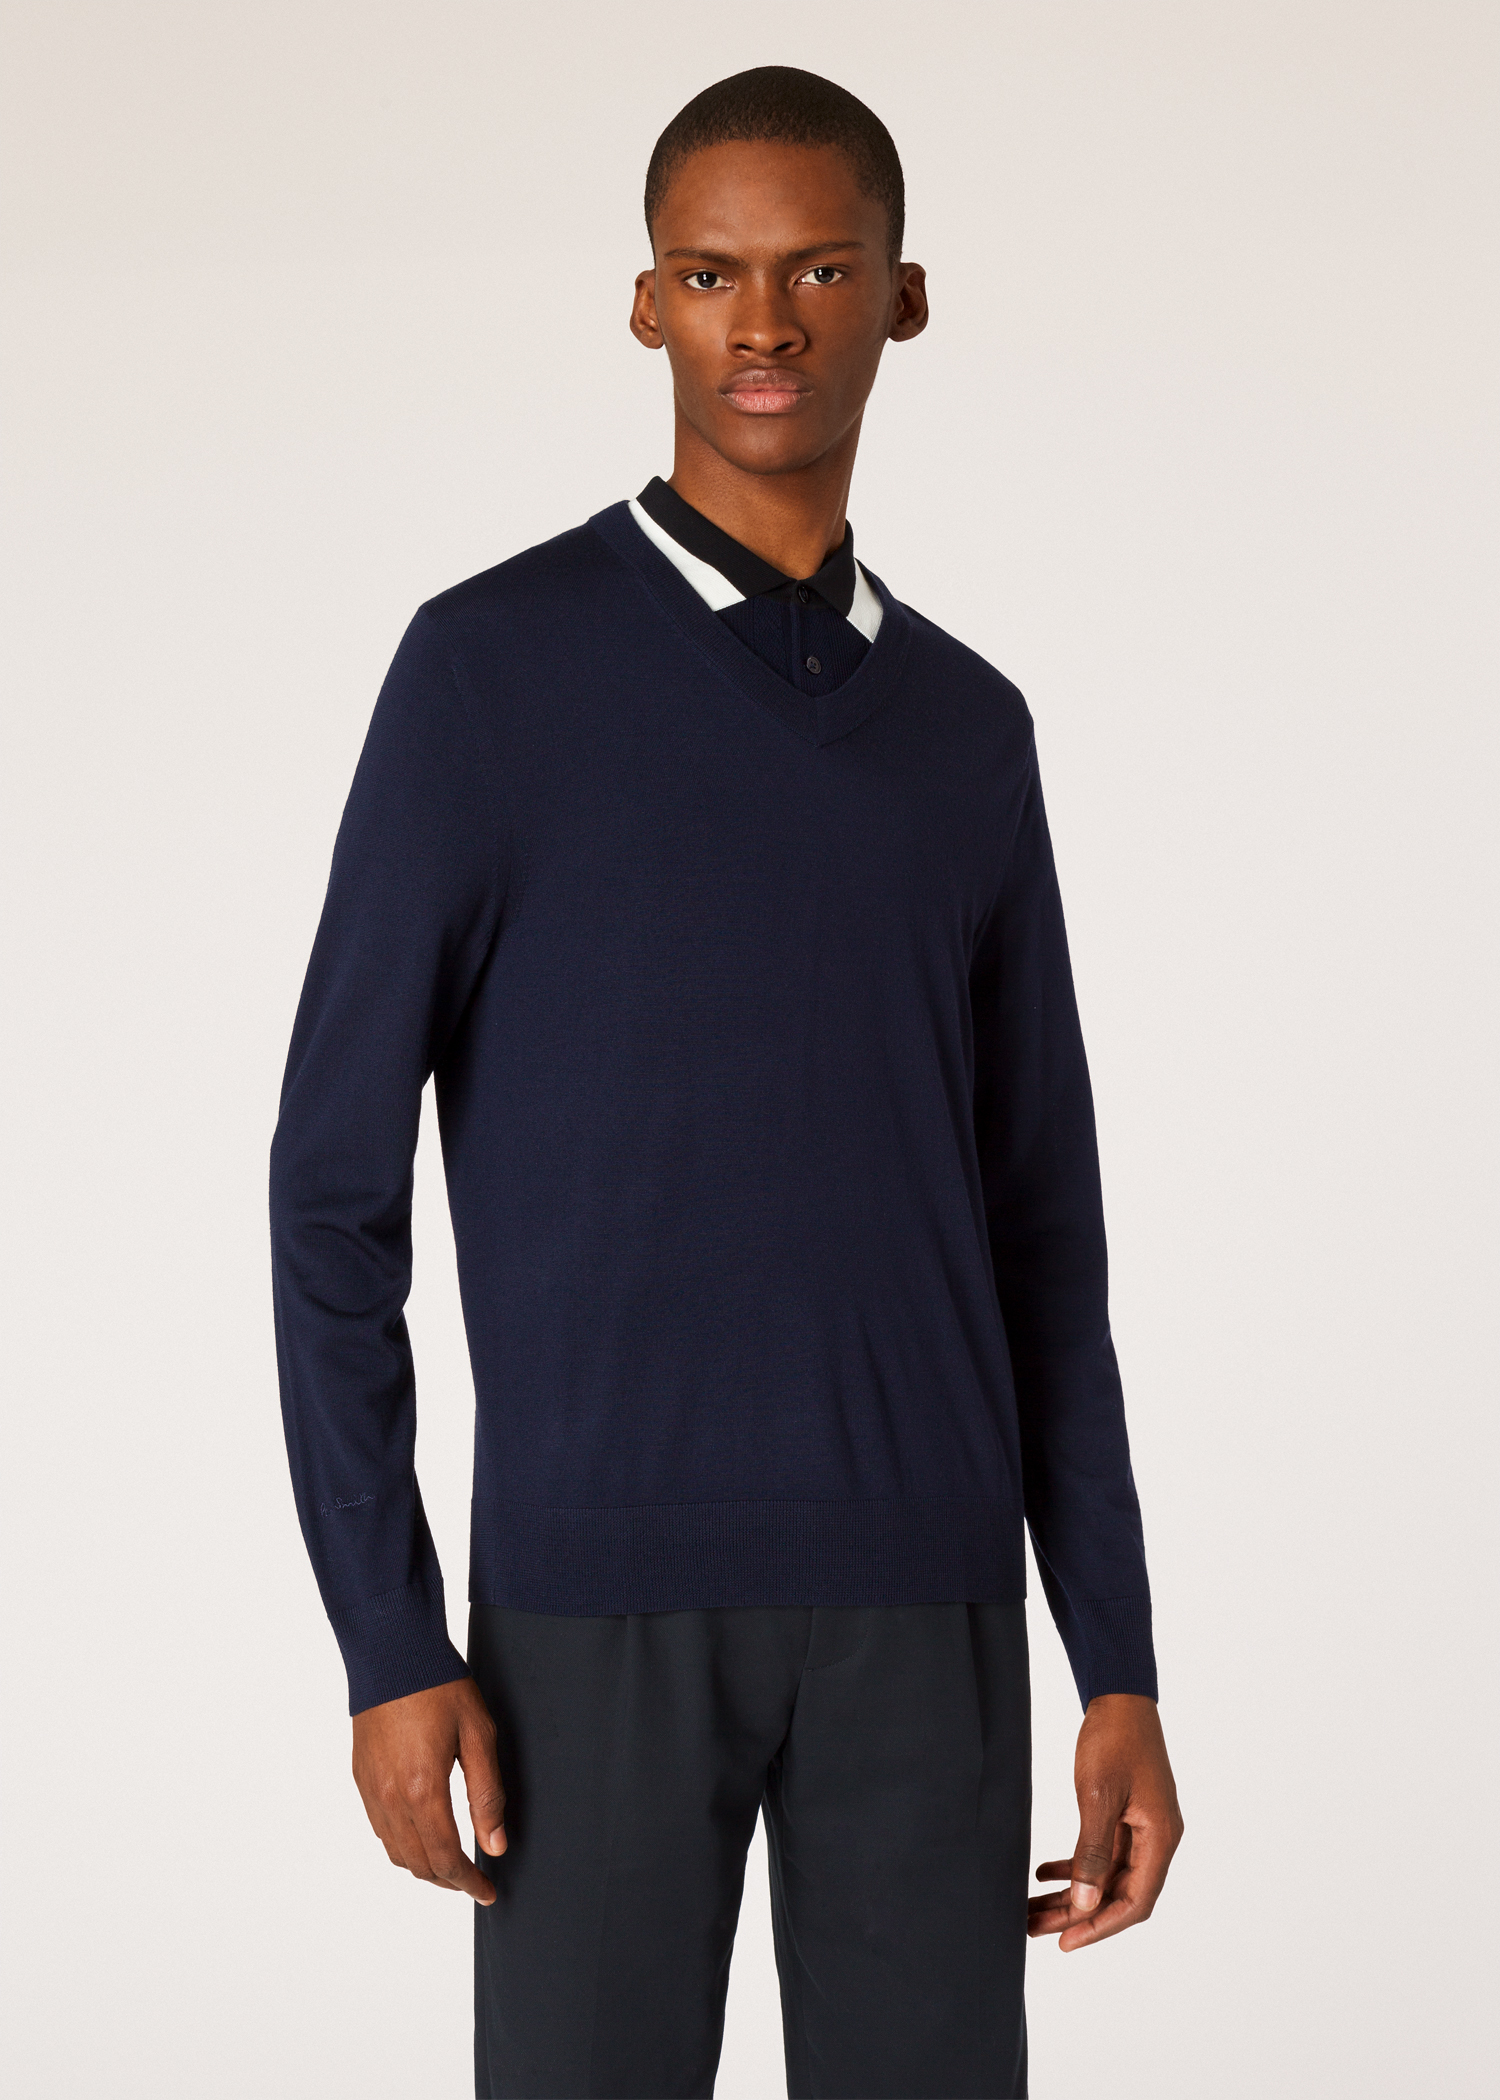 7314f7291e0 Model front close up- Men s Navy V-Neck Merino Wool Sweater With Contrast  Collar